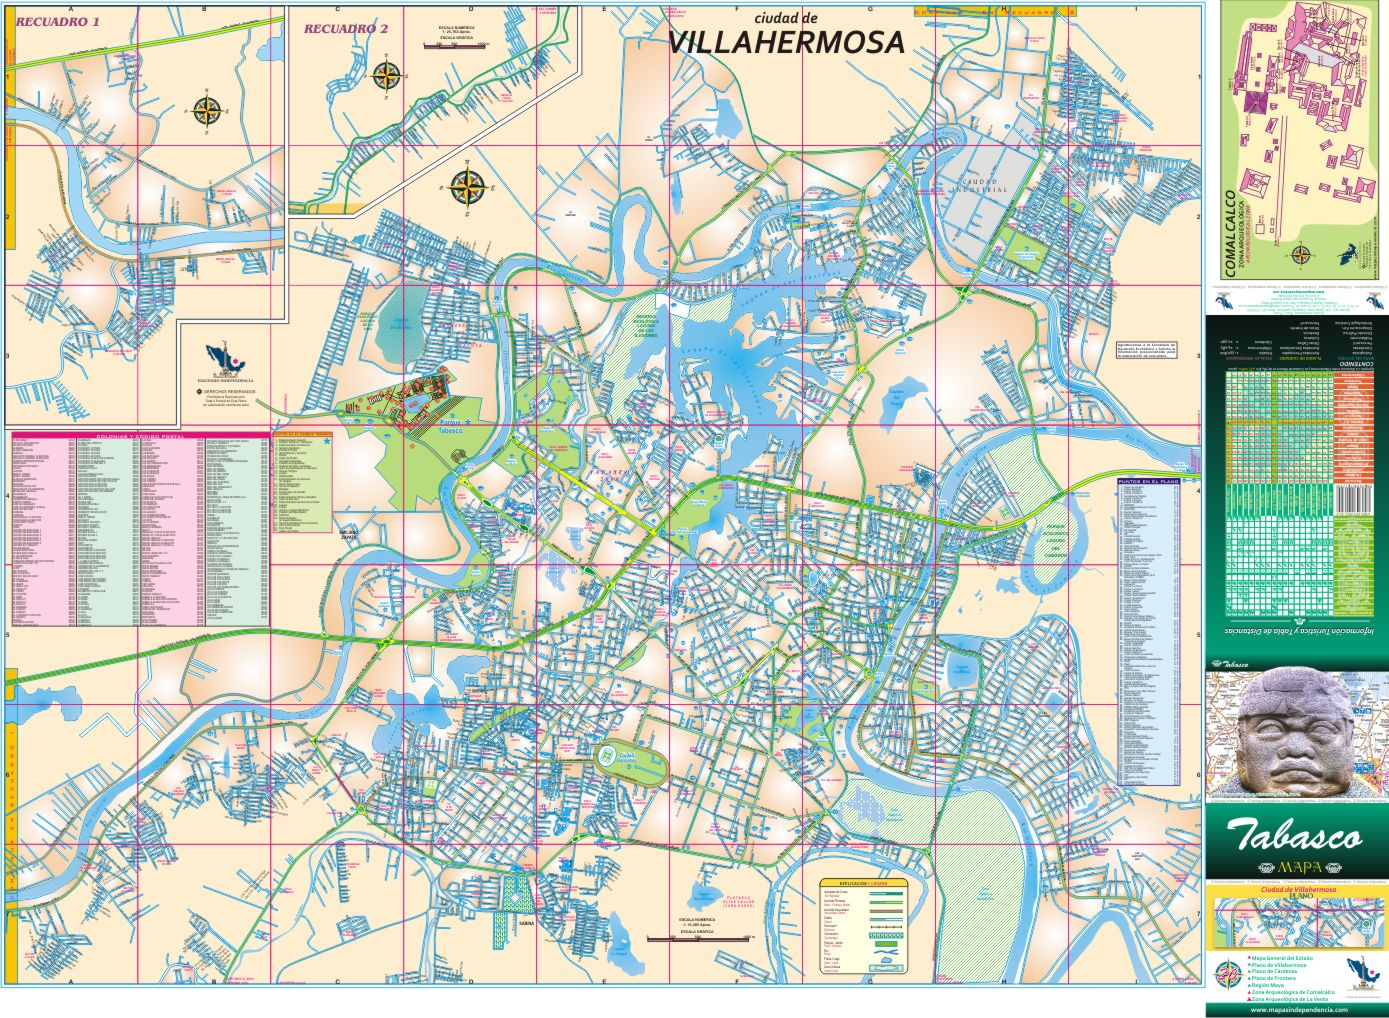 Tabasco mapas independencia for Casa de los azulejos villahermosa